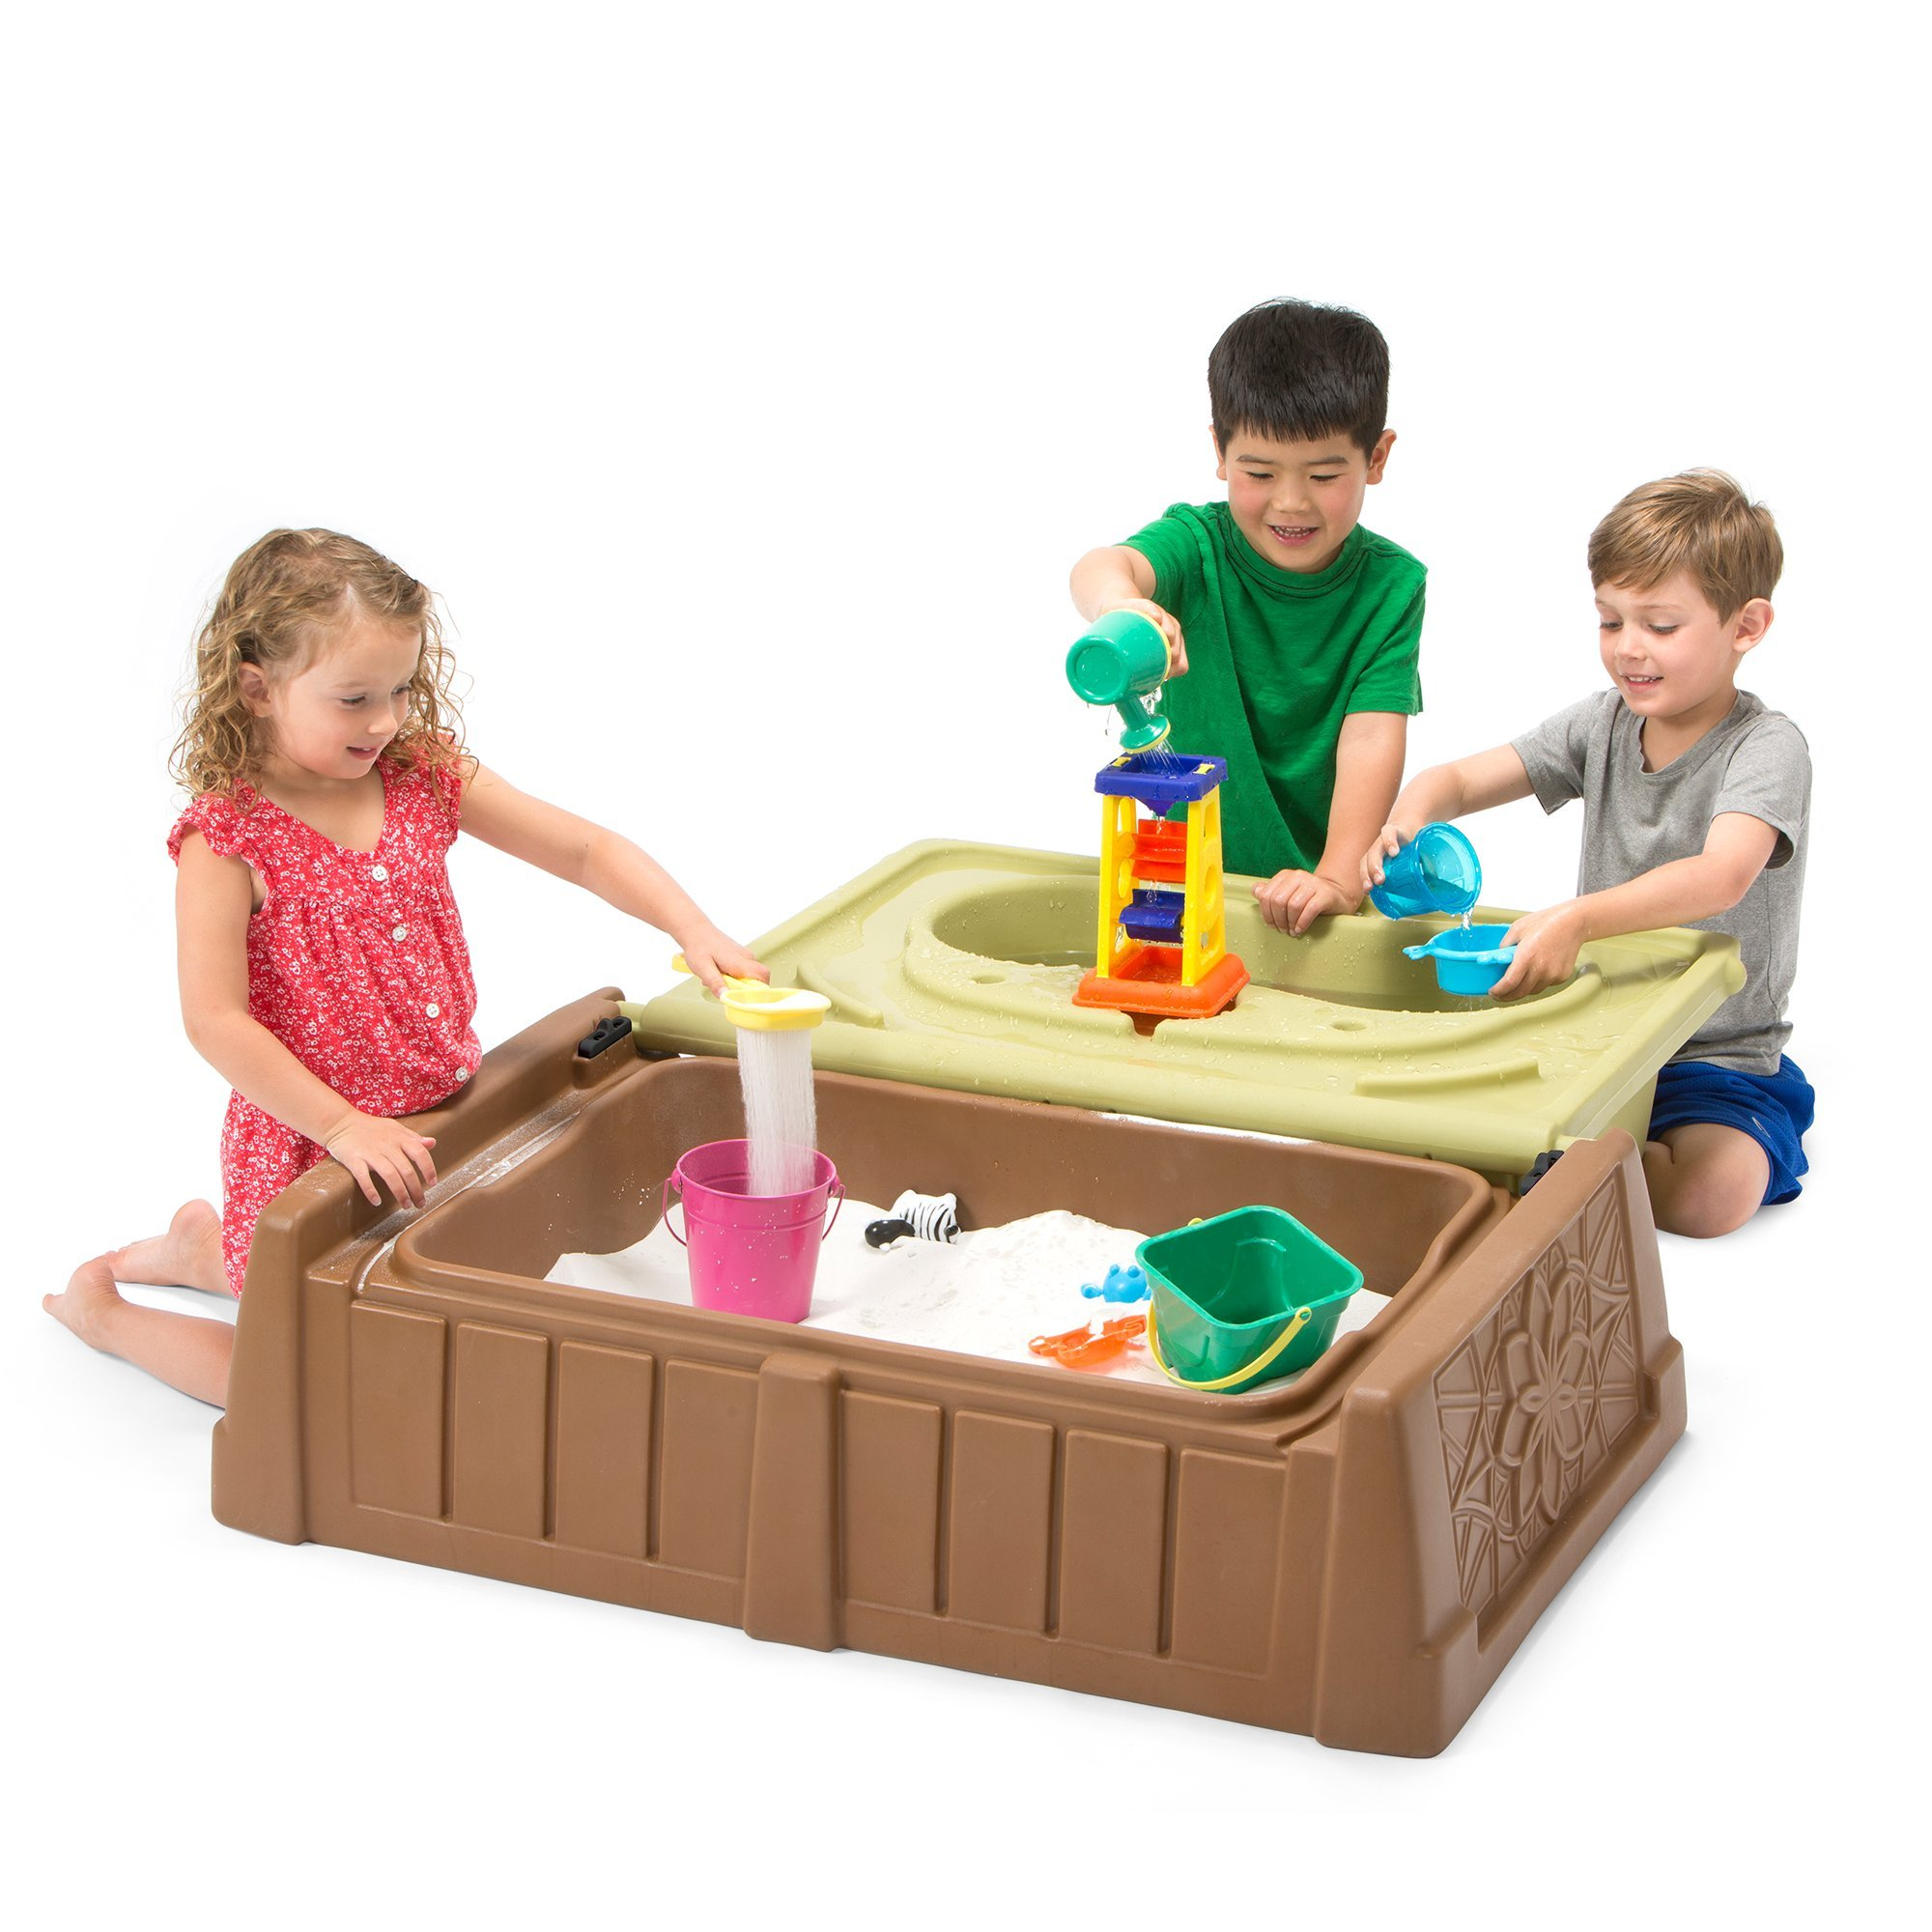 Simplay3 Sand and Water Bench - Kids Outdoor Storage Bench/Sand and Water Activity Station by Simplay3